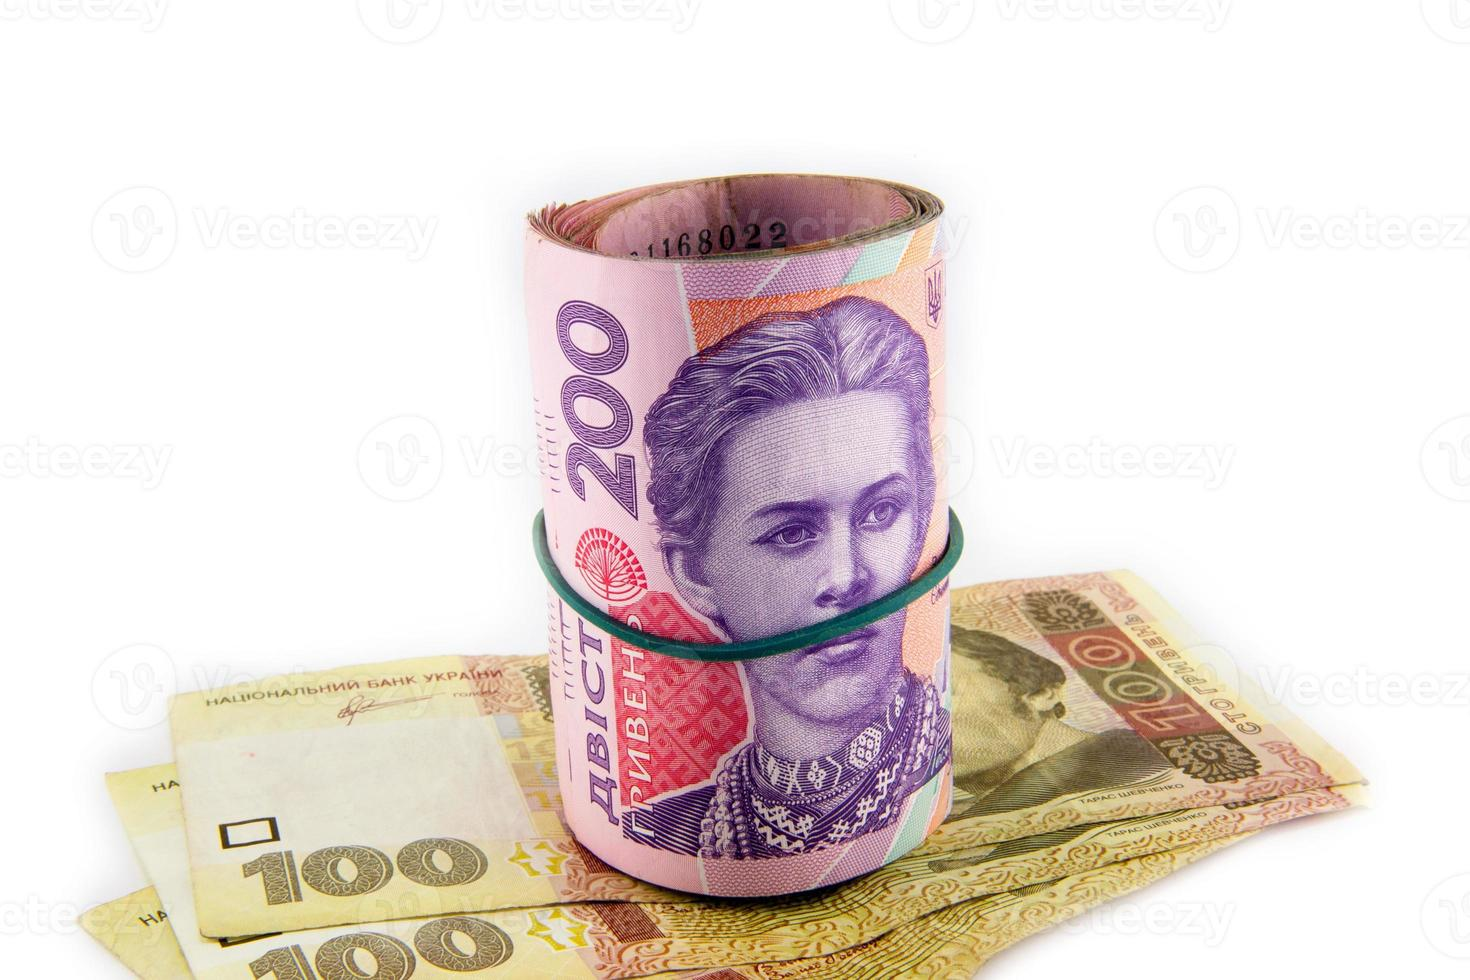 hryvnia ukrainienne bouchent photo